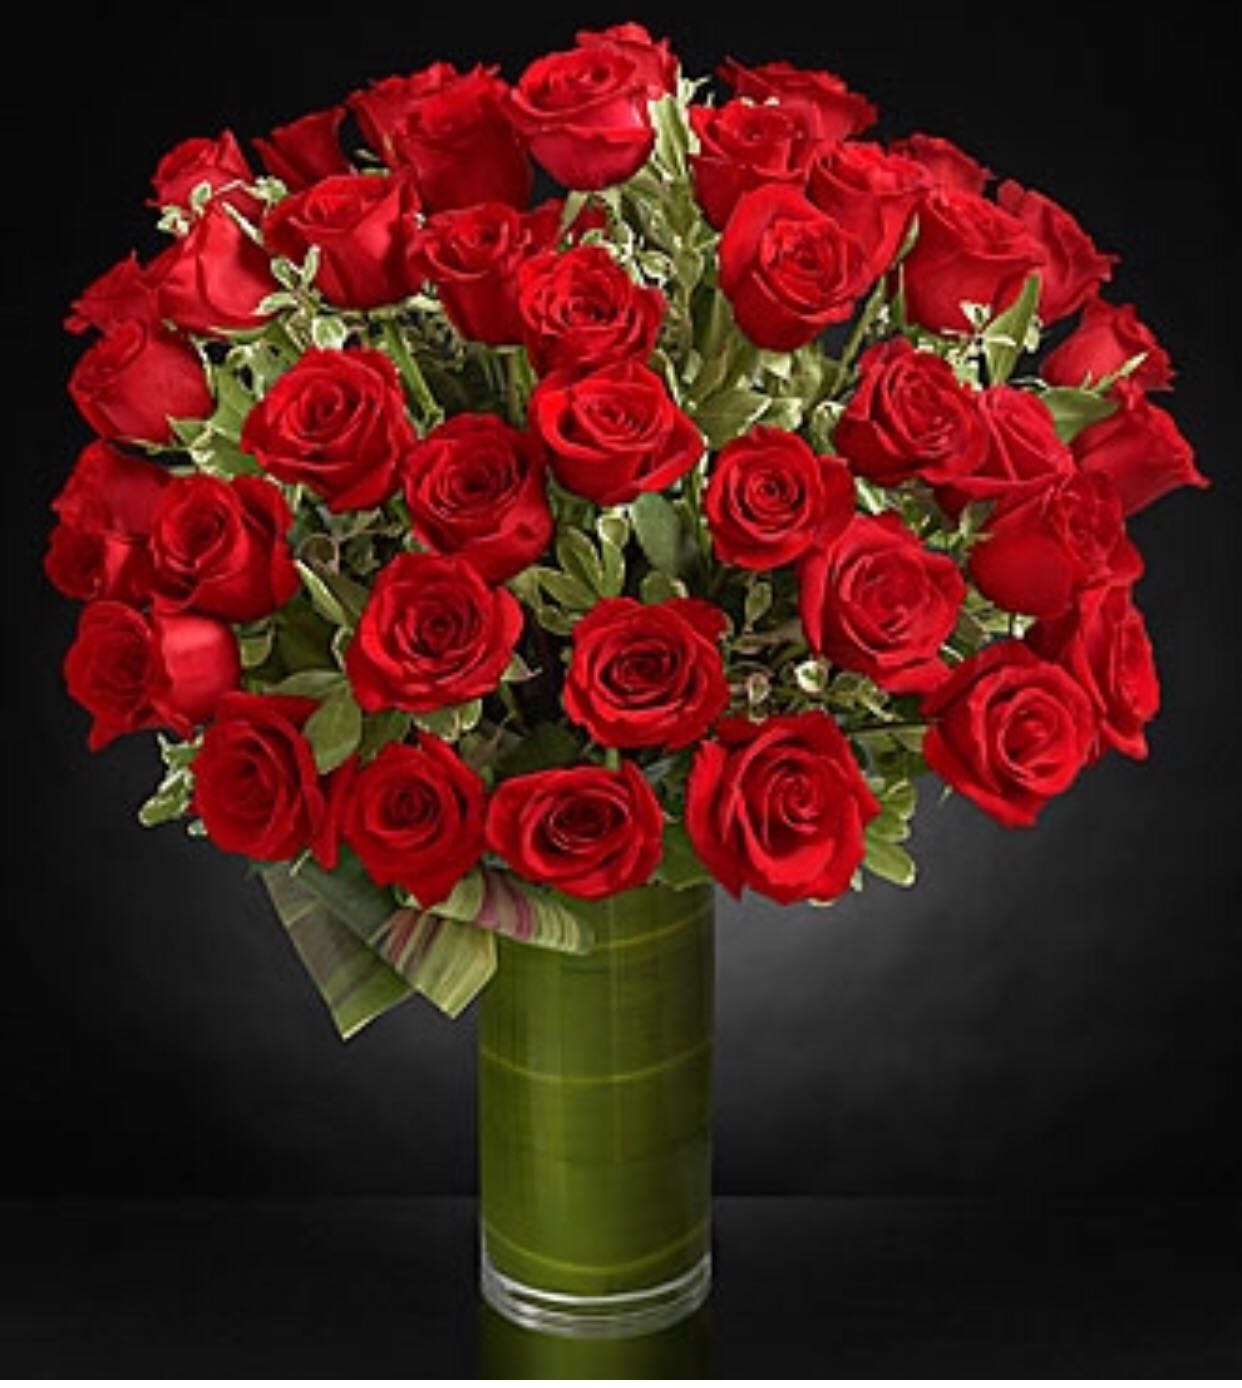 4 Dz Red Roses In A Vase Sunlight Flower Shop